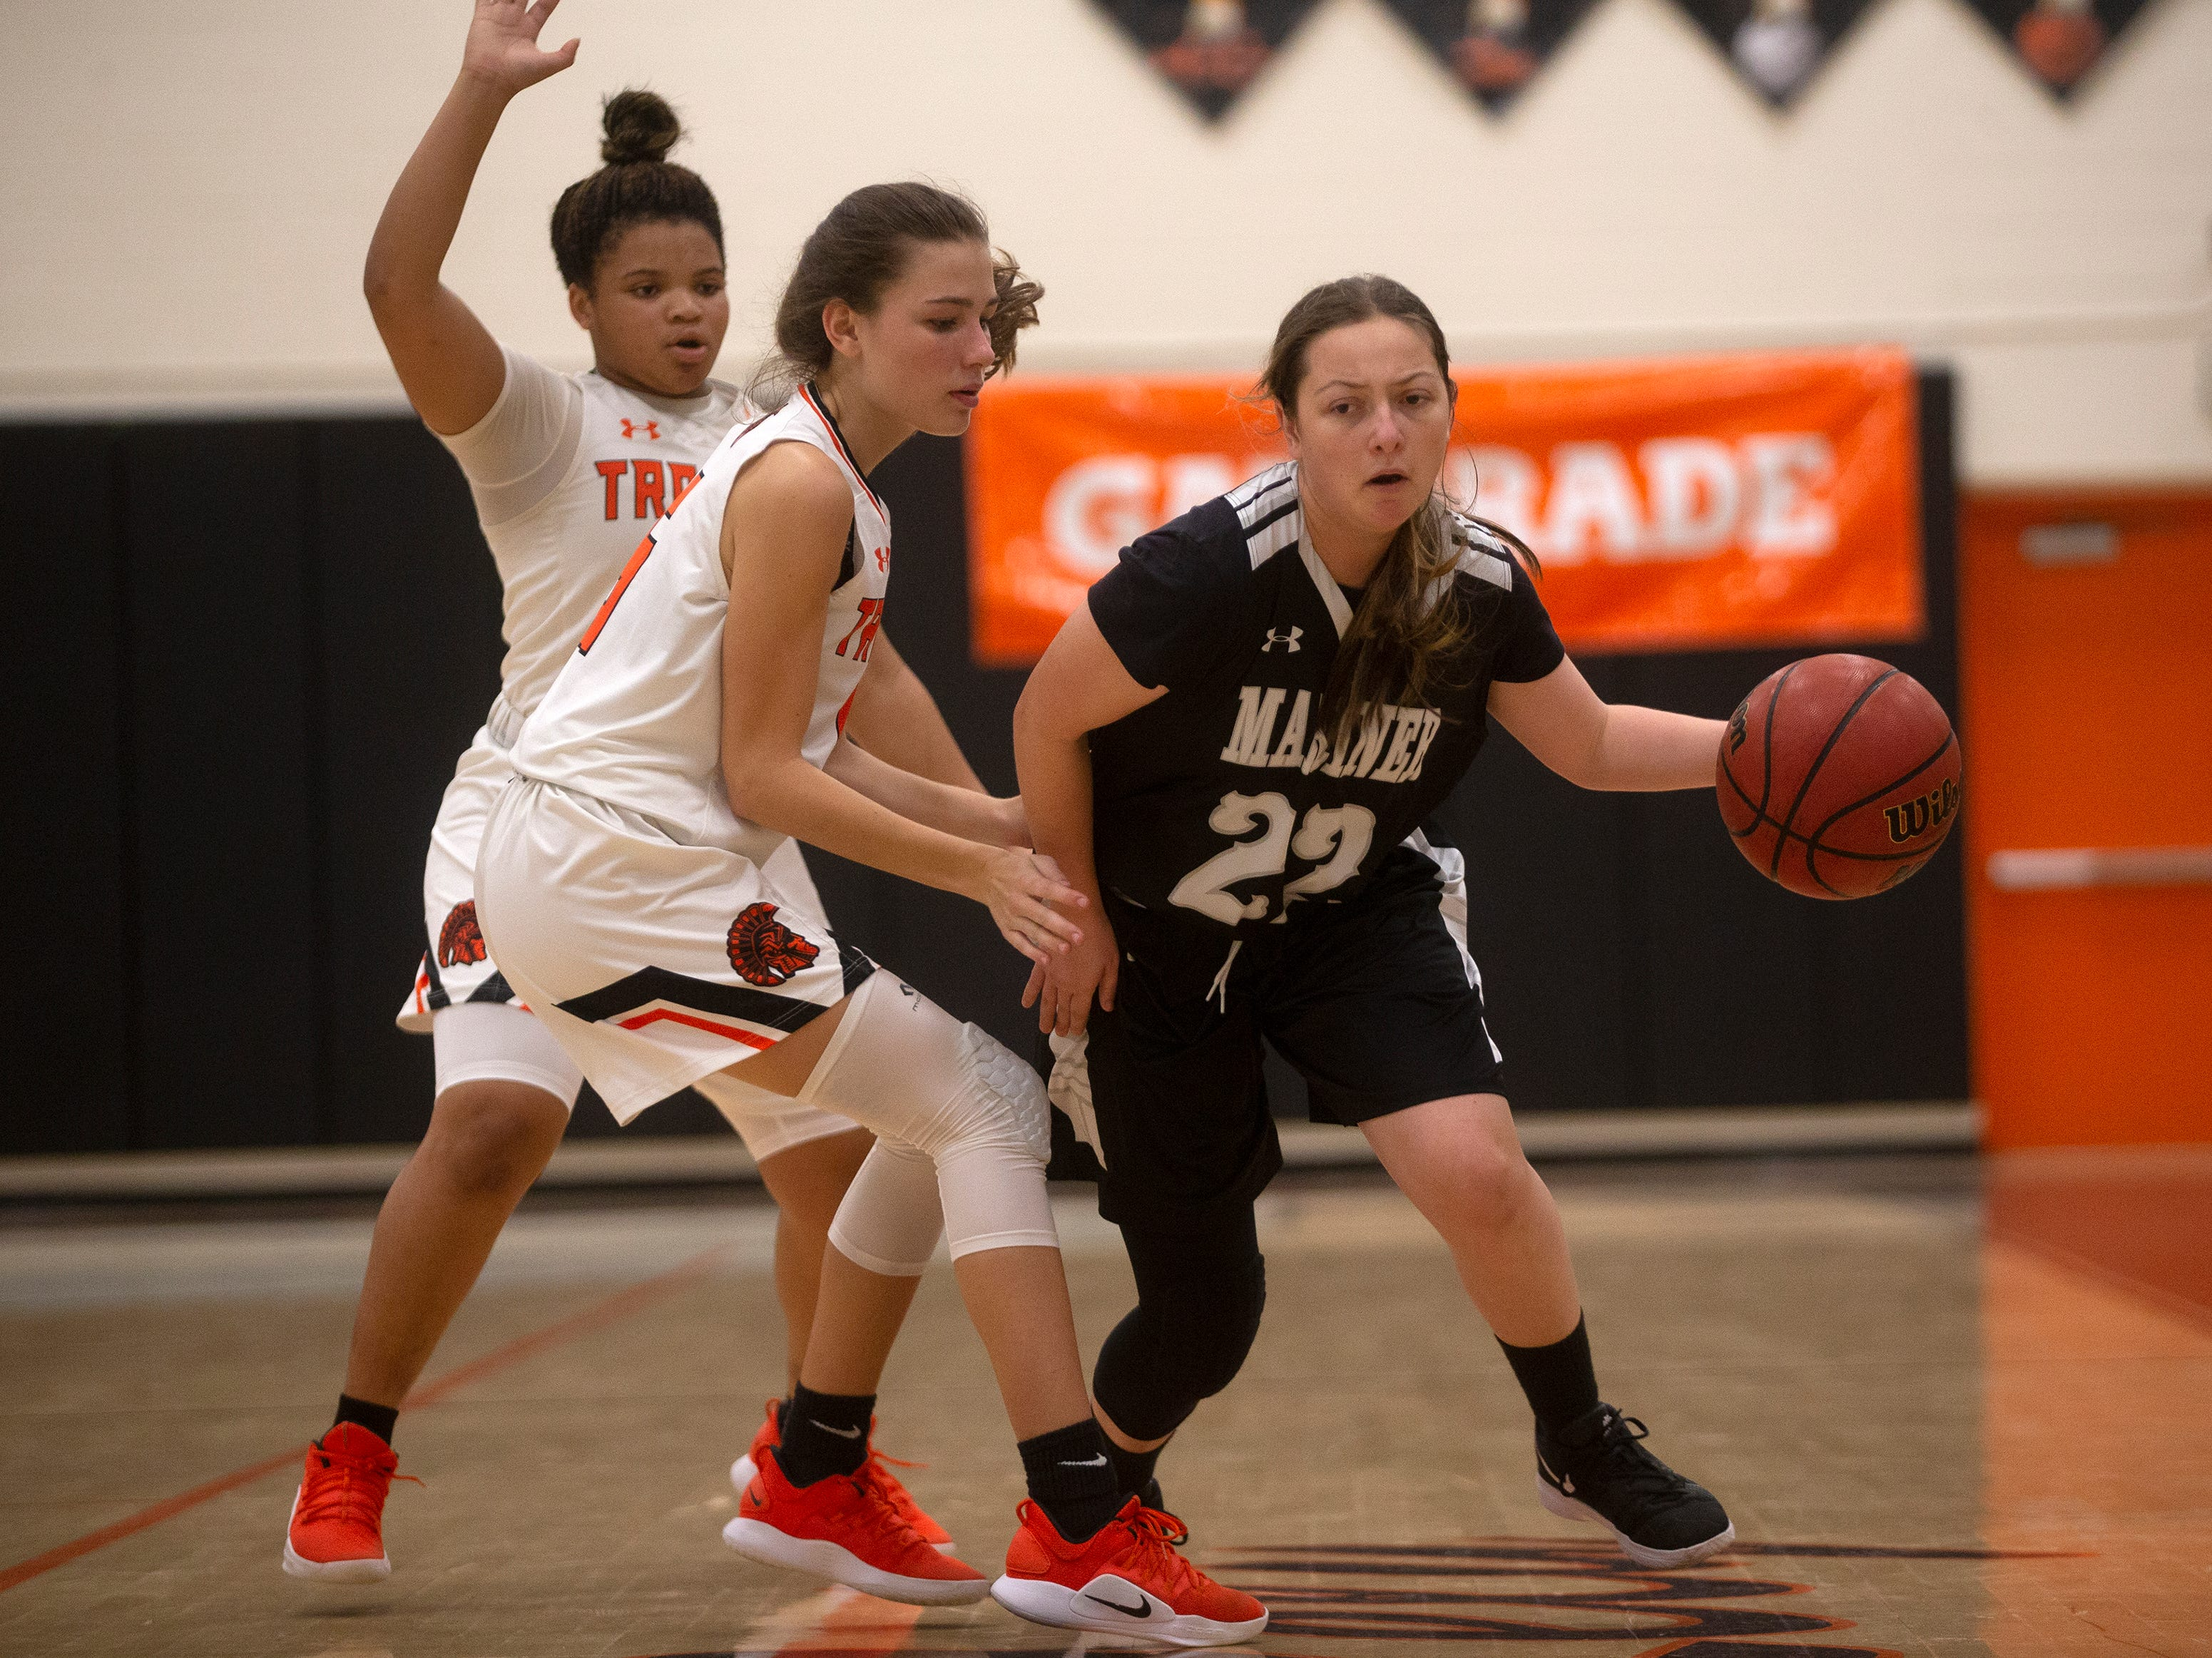 Mariners High School's Kelli-Anne Suthard moves the ball down the court during their game against Lely High School, Thursday, Feb. 6, 2019, at Lely High School.